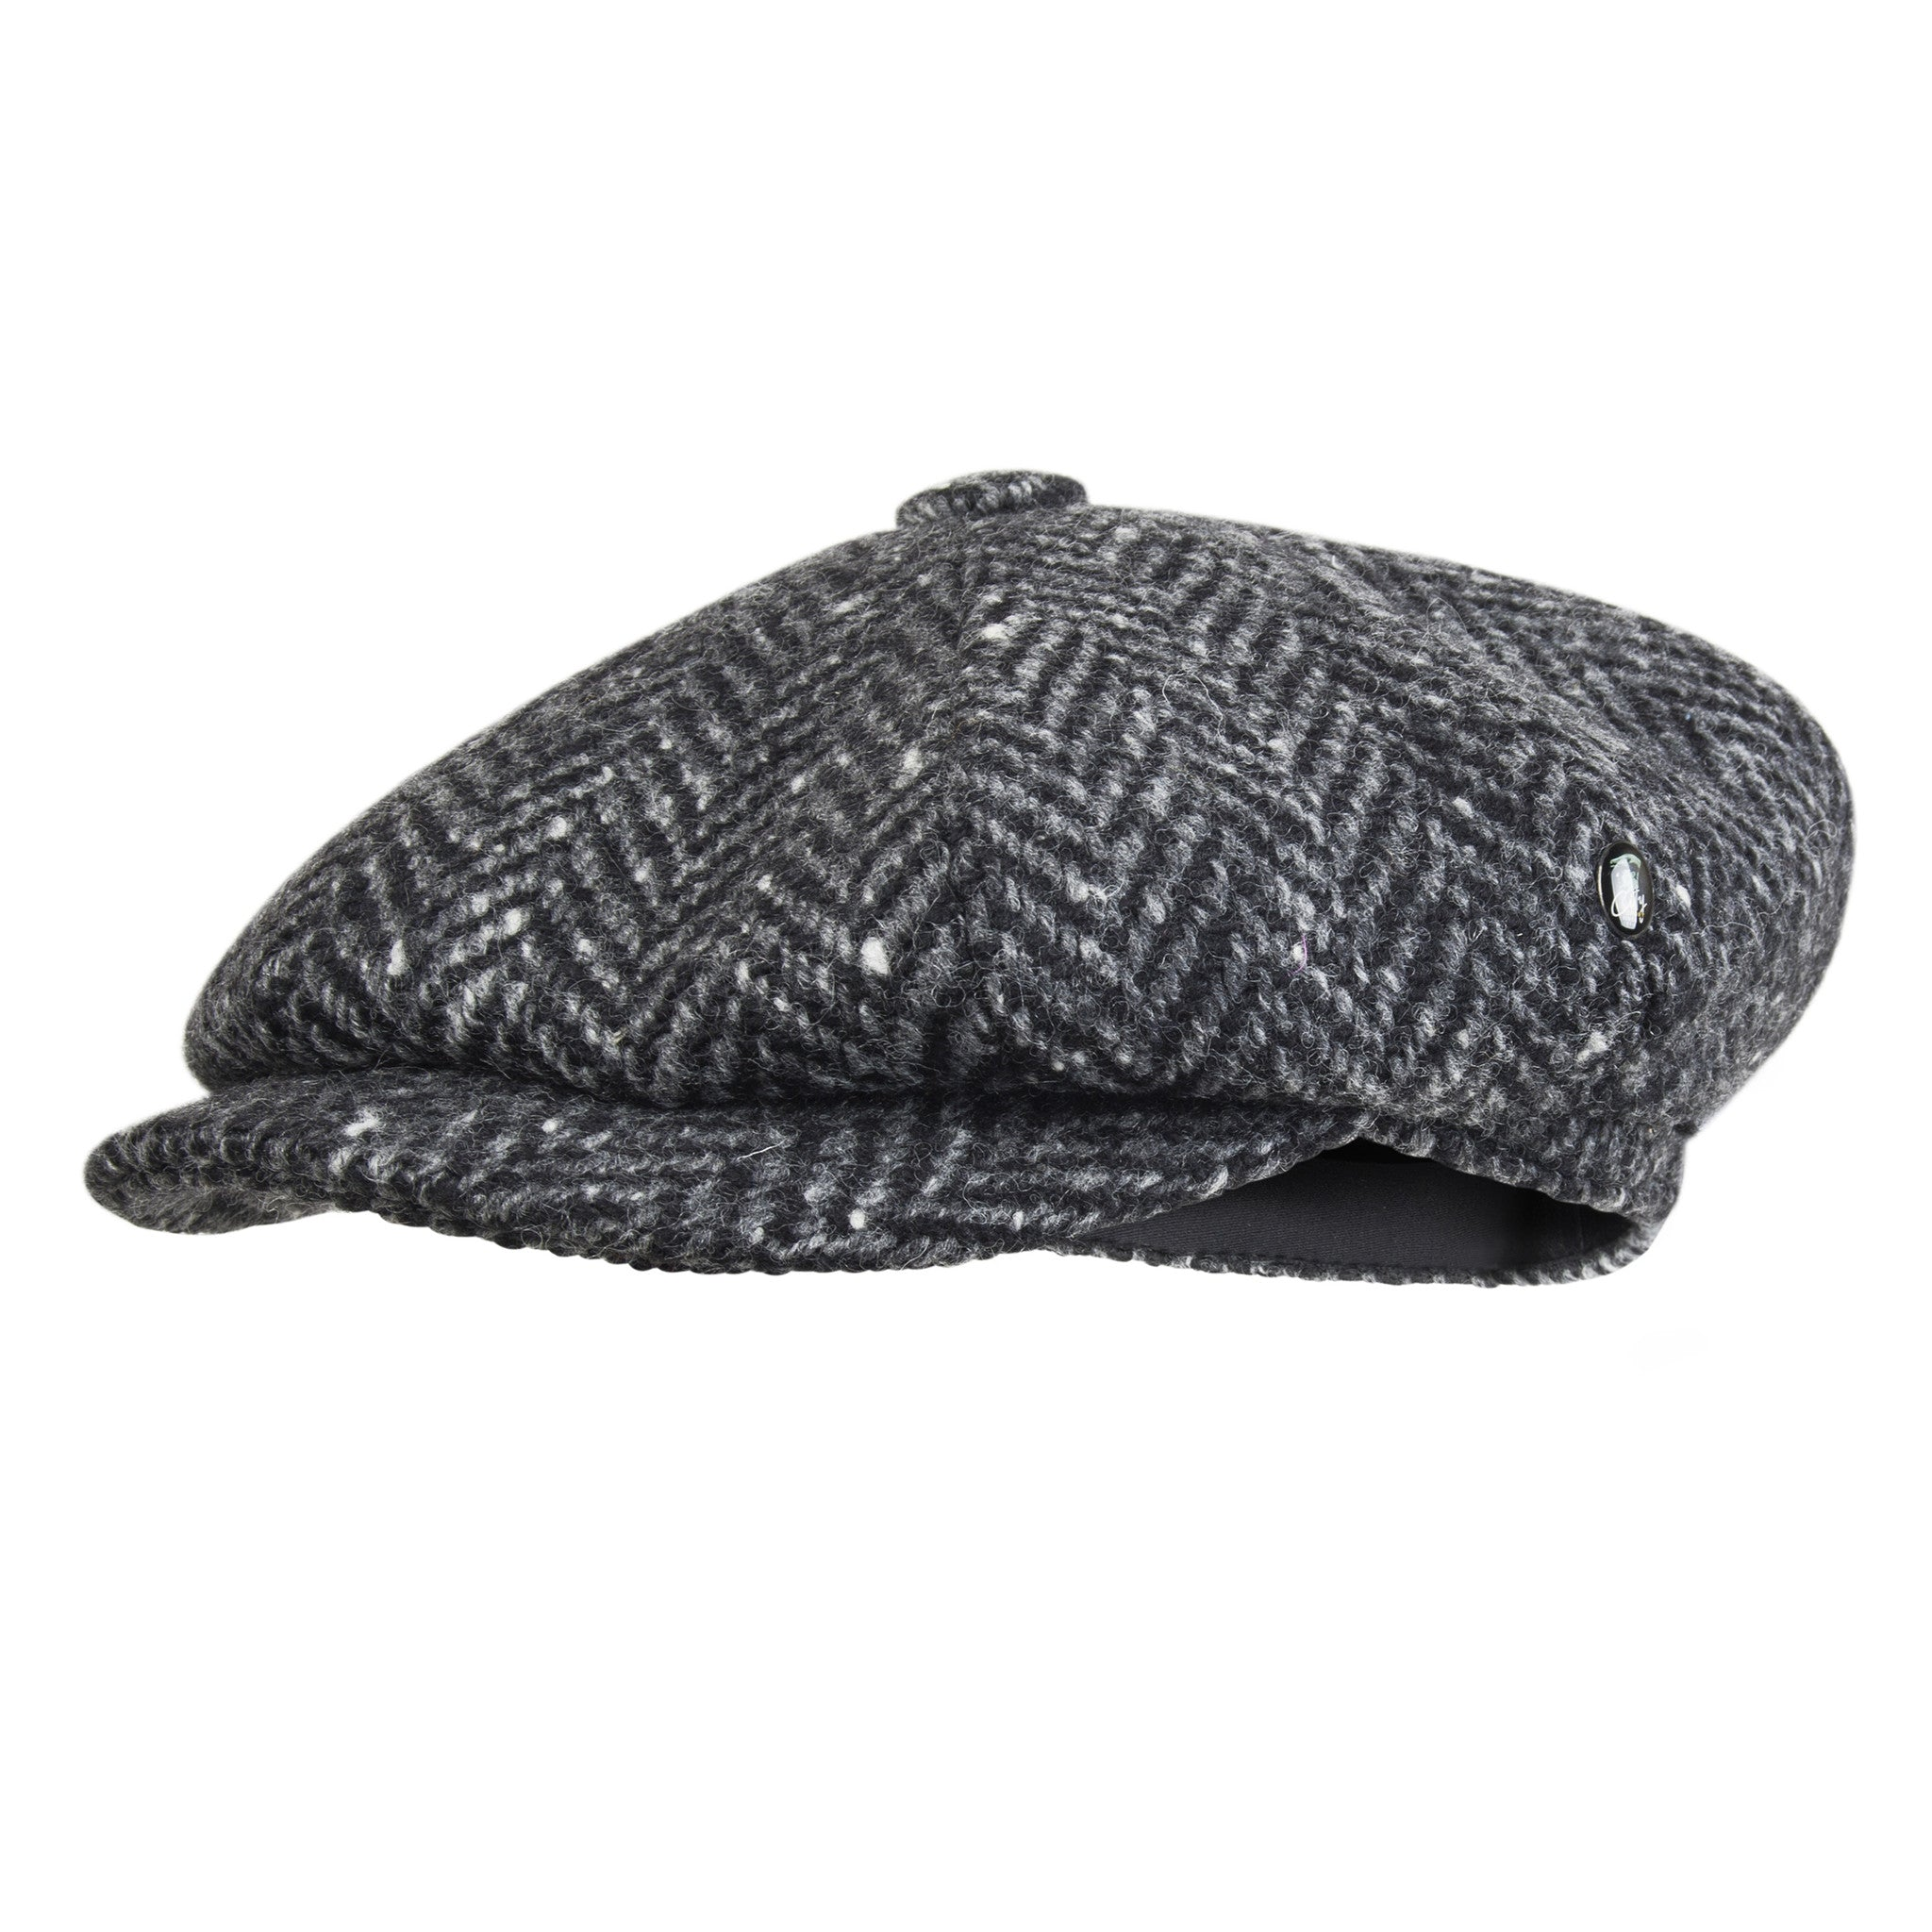 Donegal Tweed bakerboy cap | Grey Herringbone | buy now at The Cashmere Choice London